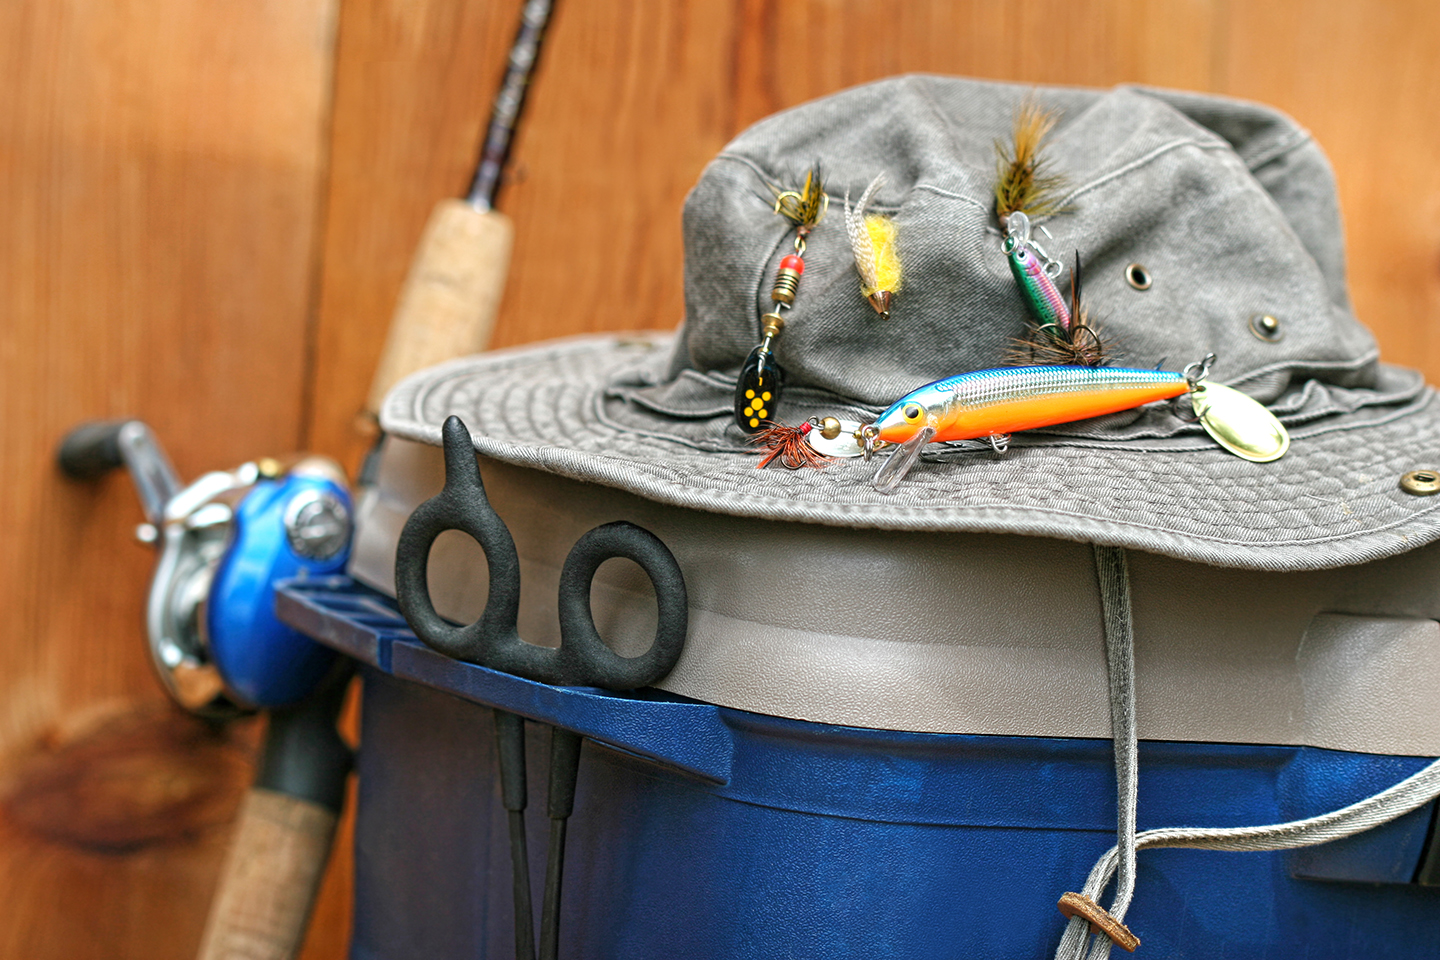 A lucky fishing hat, one of the most common common fishing superstitions, rested on a cooler with a fishing rod behind